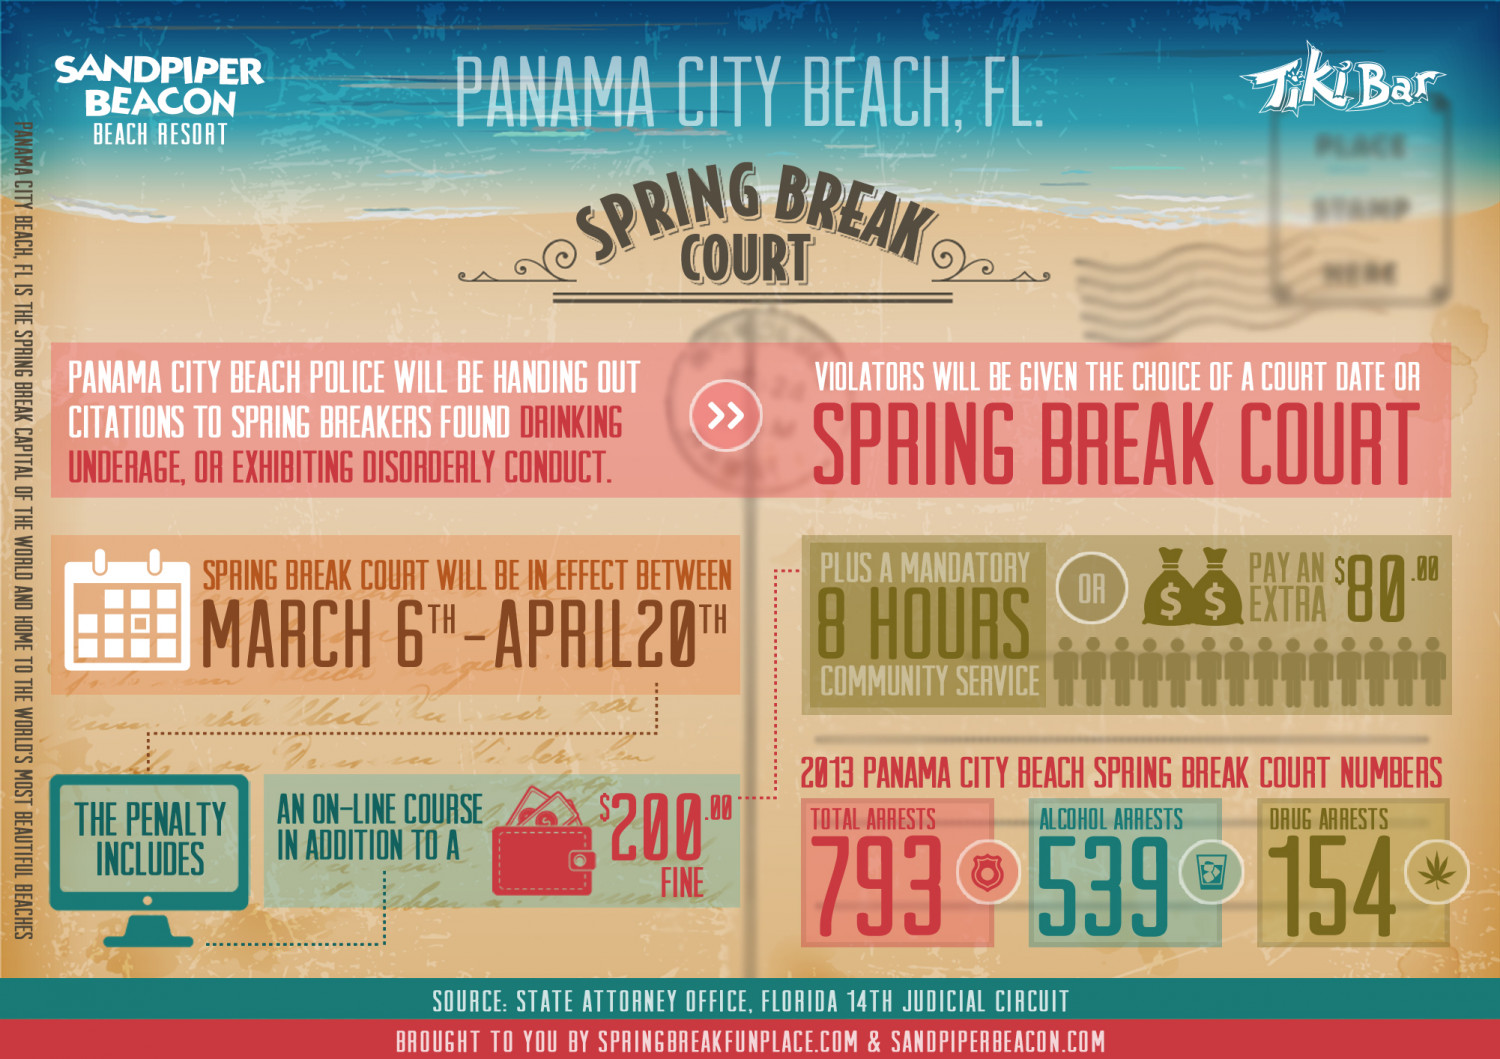 Panama City Beach Florida Spring Break Court Infographic